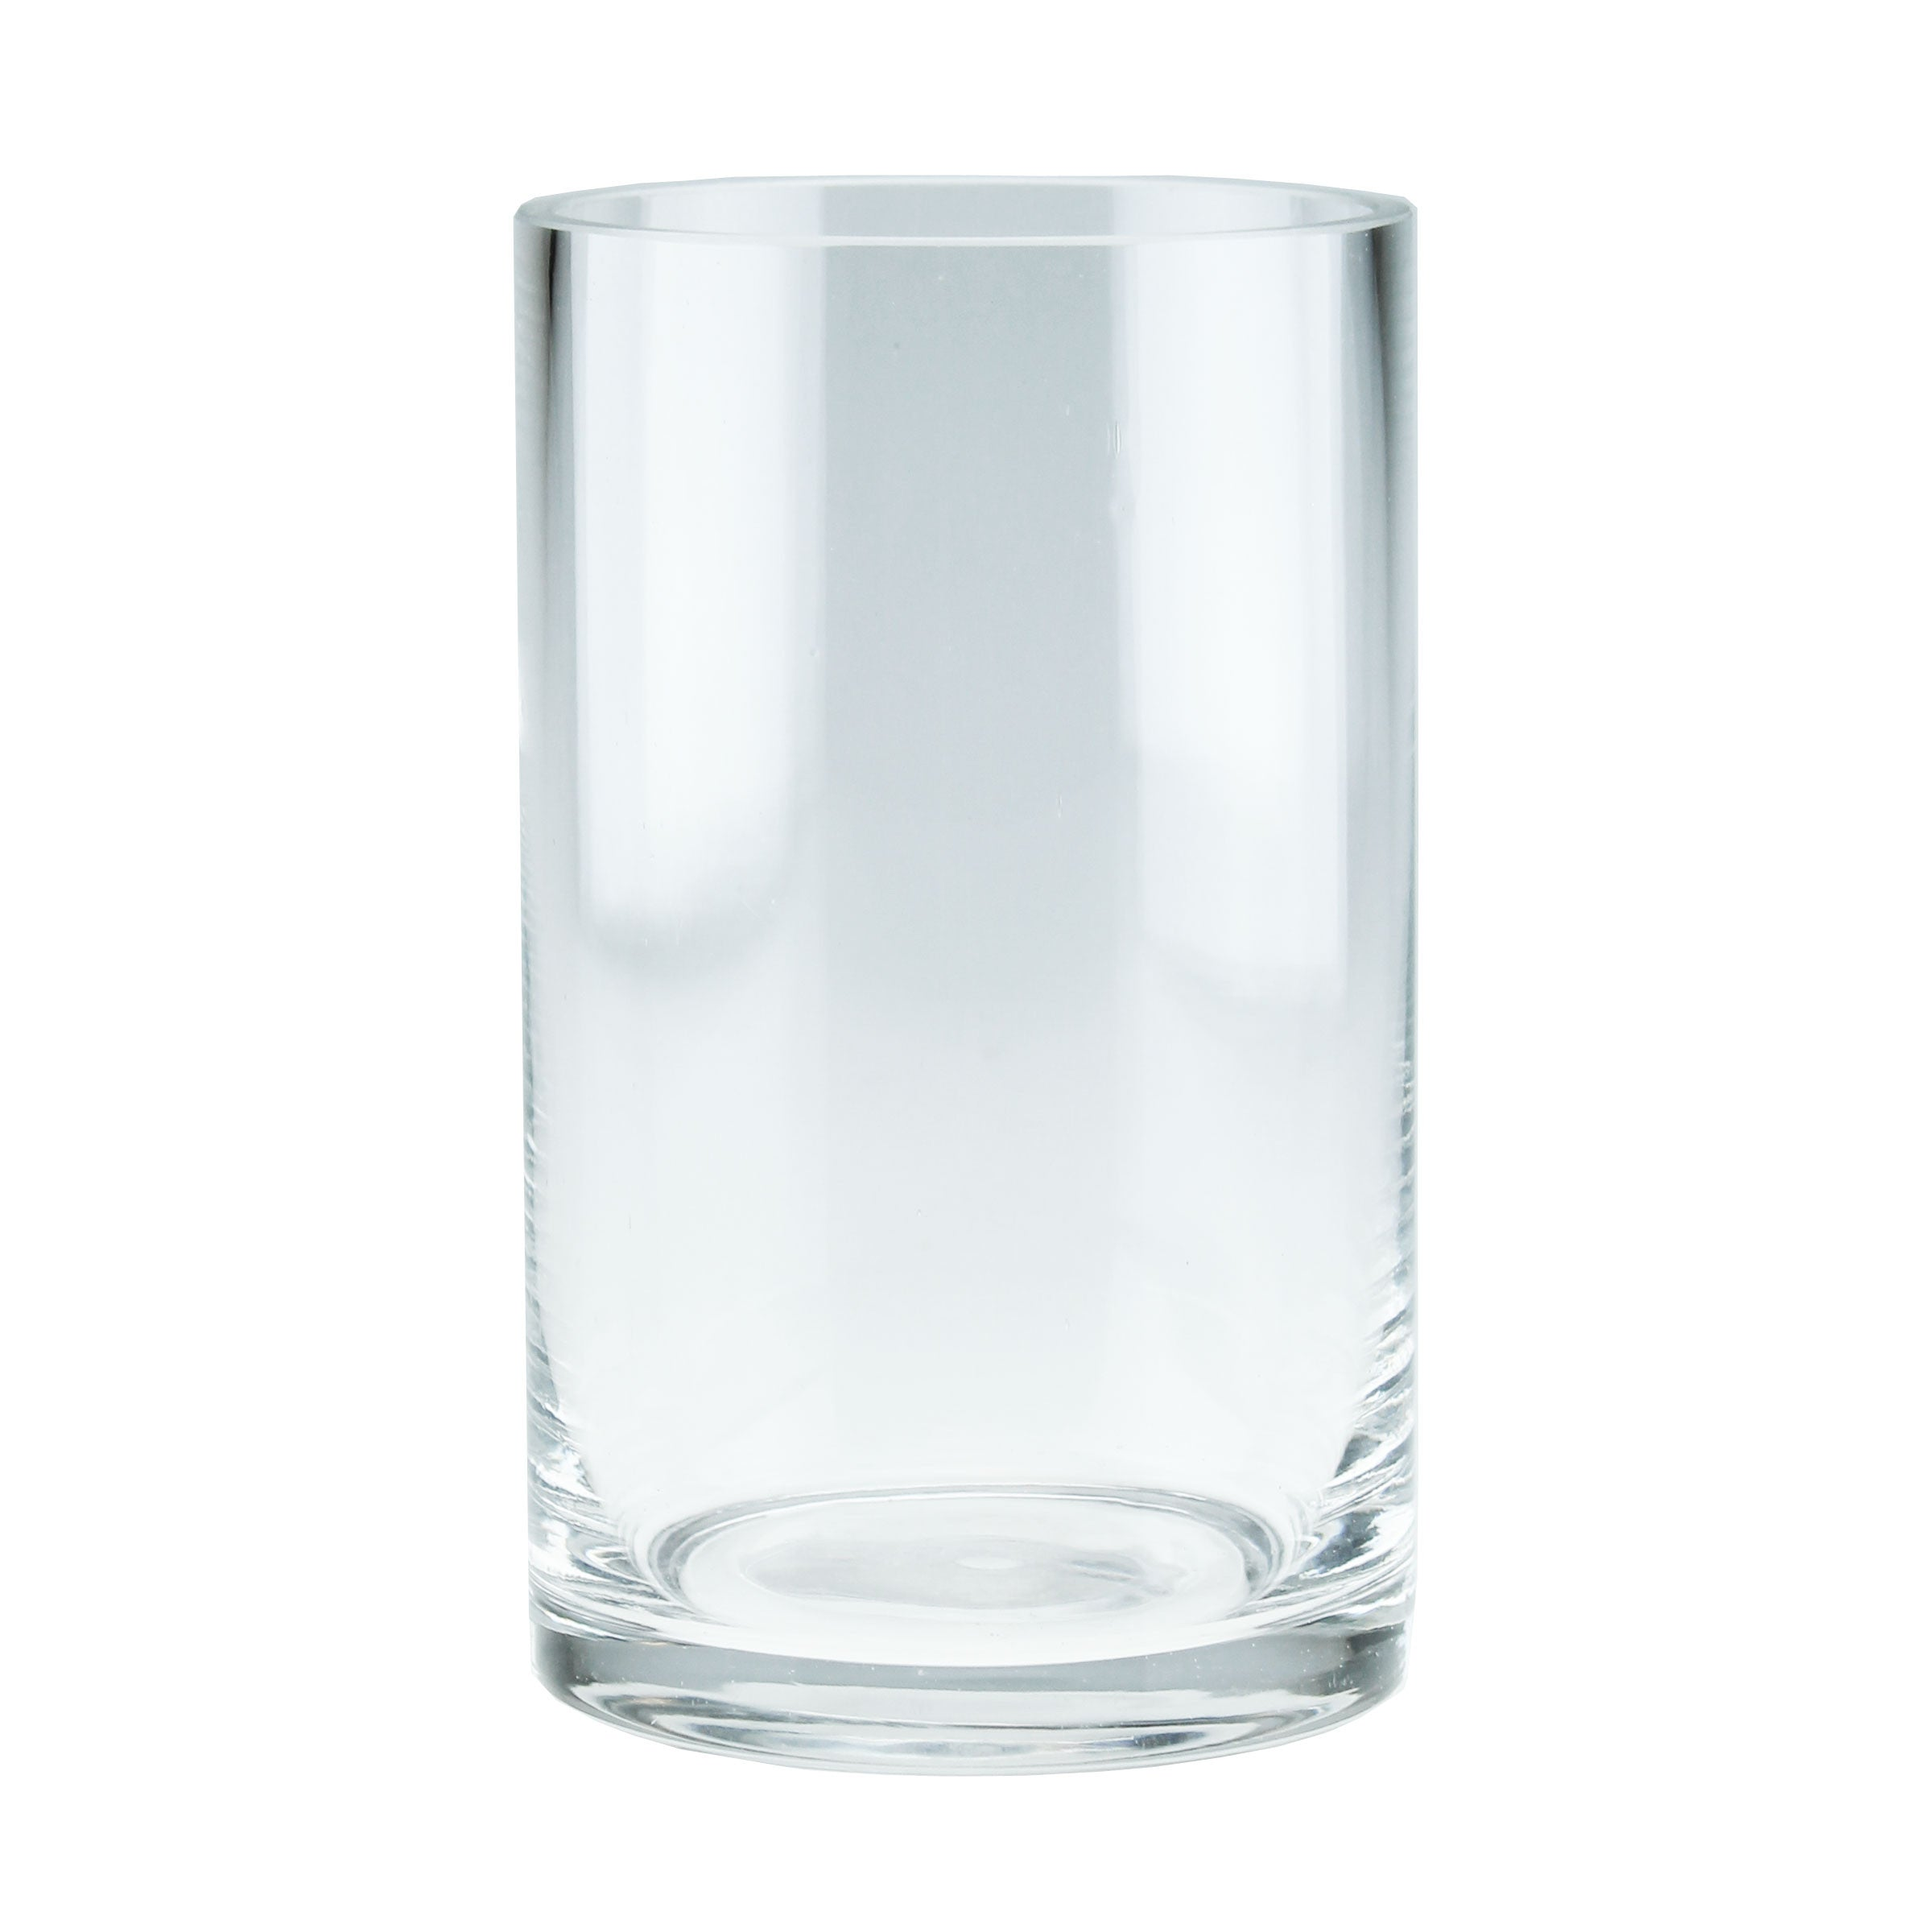 glass dp com vase clear amazon inch home kitchen aalto iittala